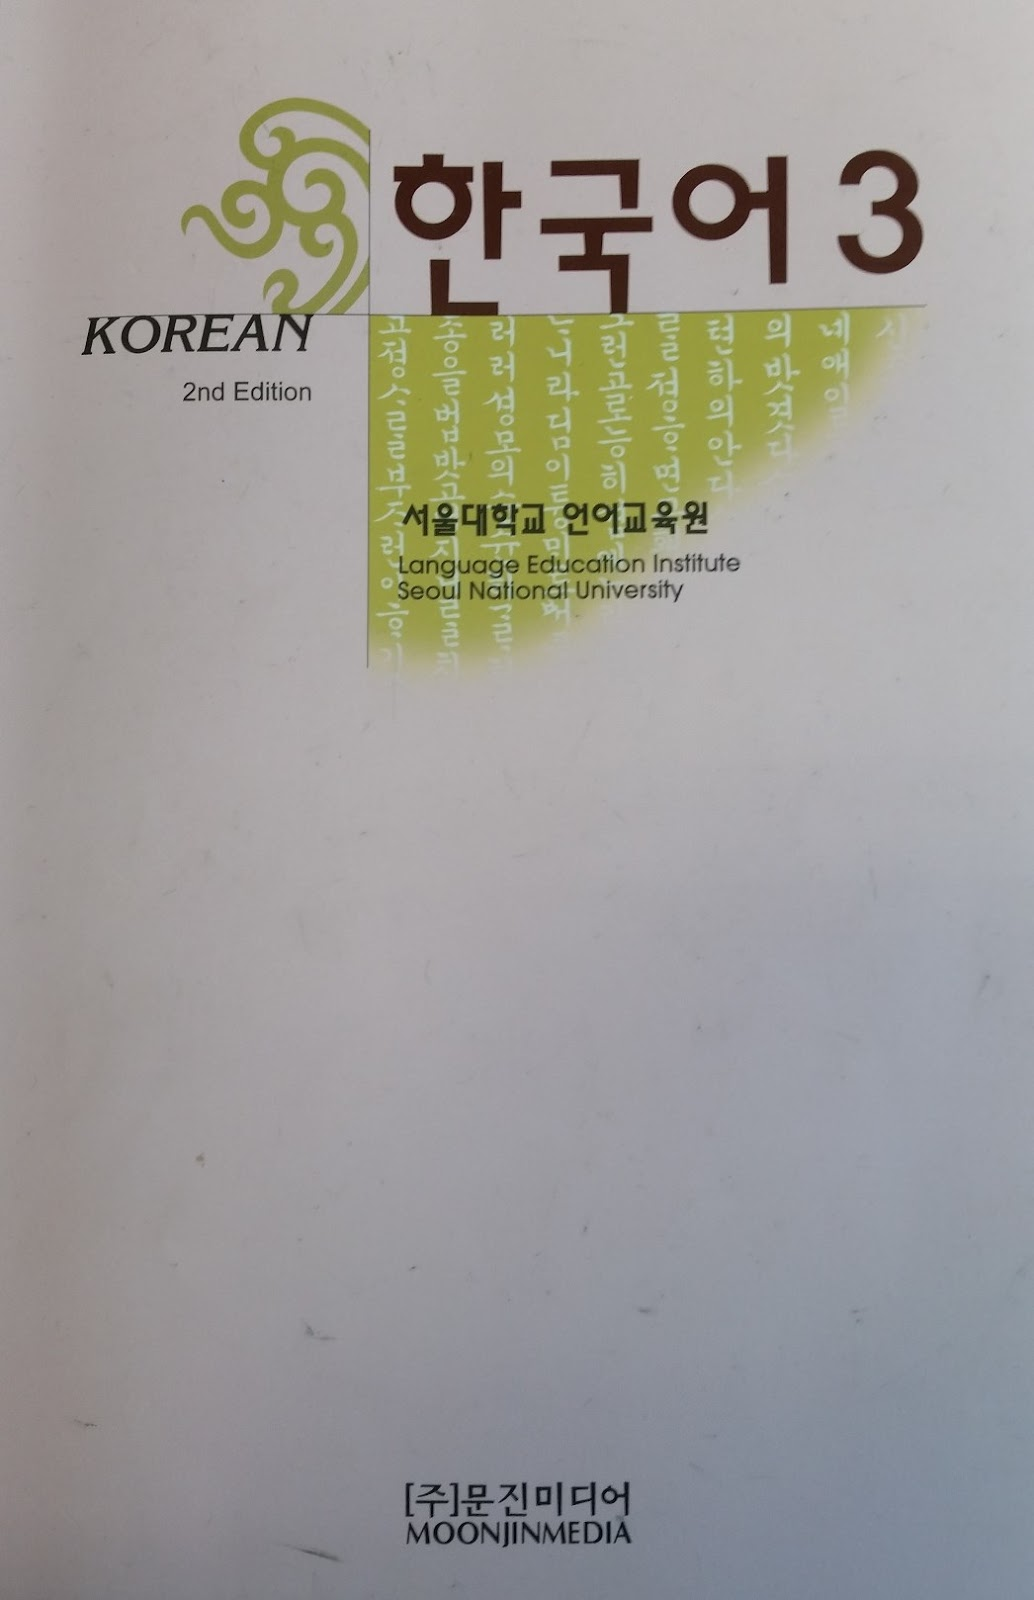 Seoul Korean Level 3 Textbook PDF+Audio ebook - Korean TOPIK